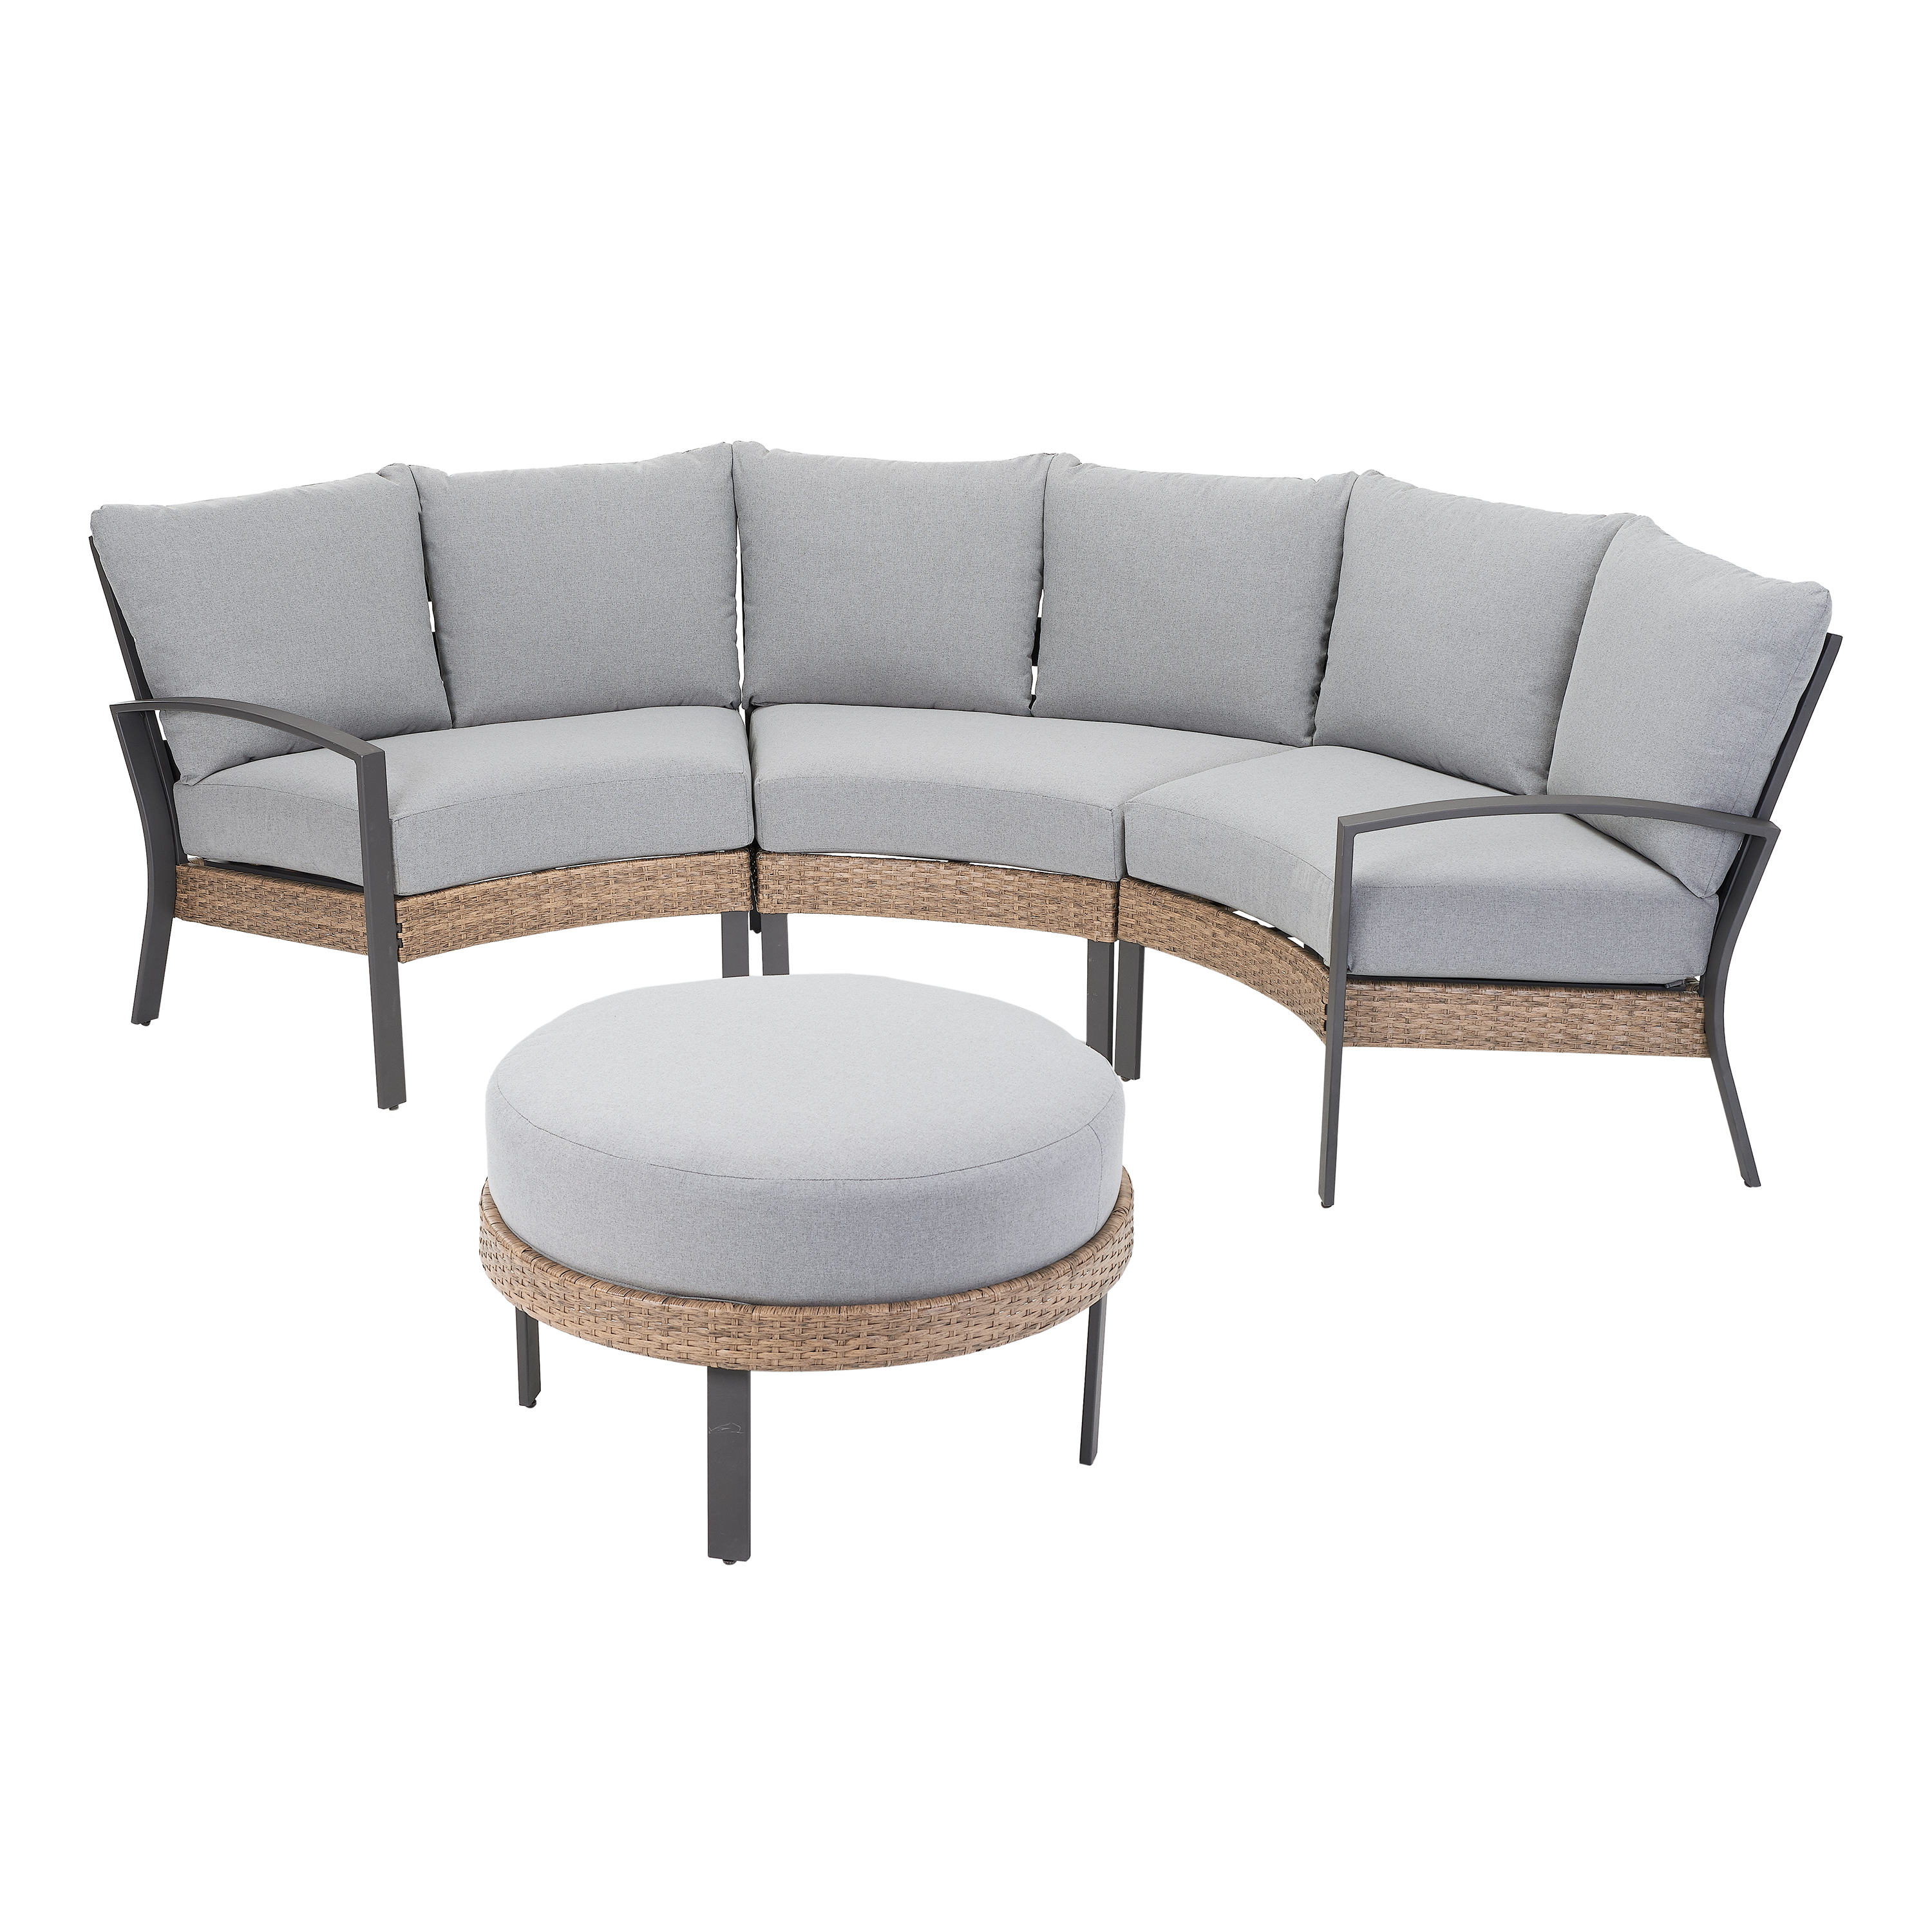 mainstays millbrae grove 4 piece half round patio sectional set with ottoman with gray cushions